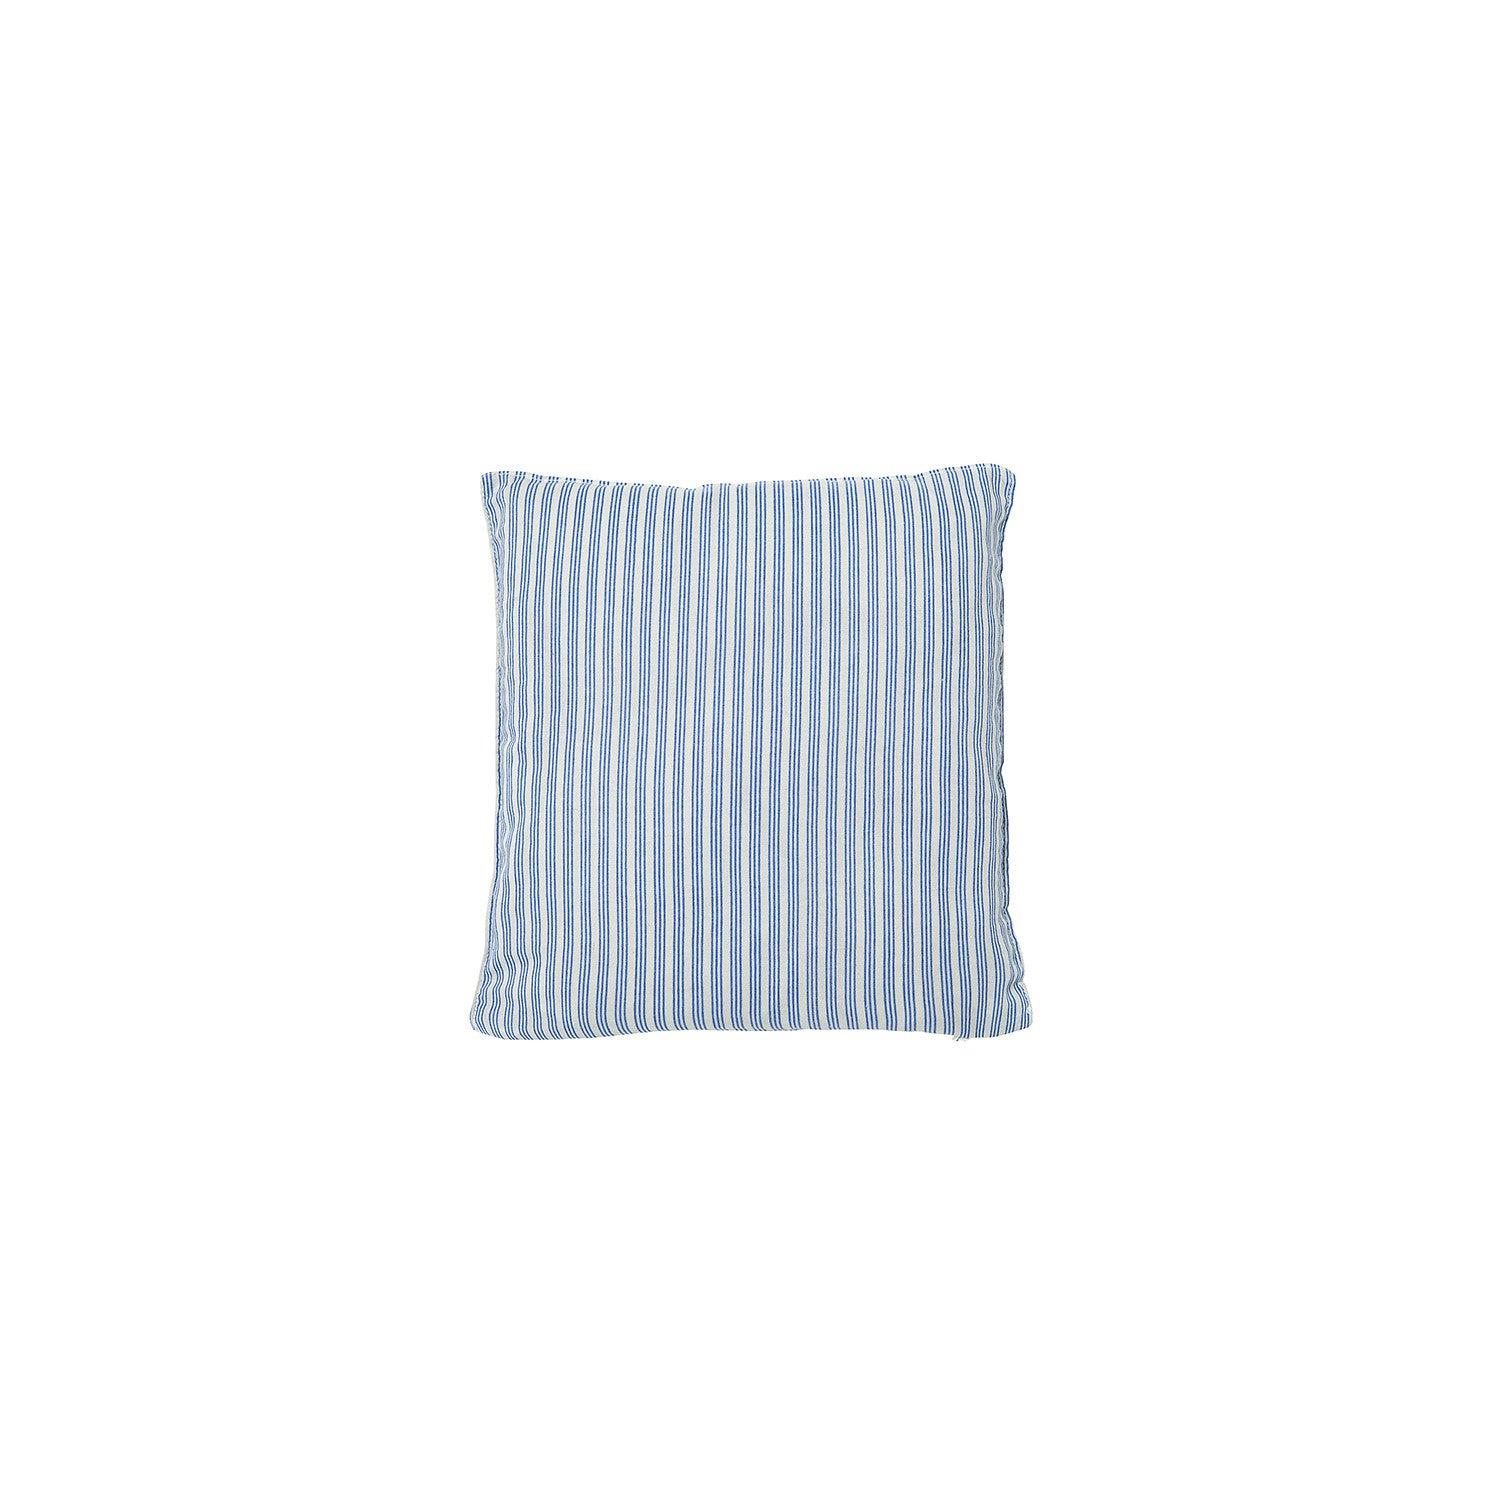 Bene Bene Blue Mini Cushion - Ladida